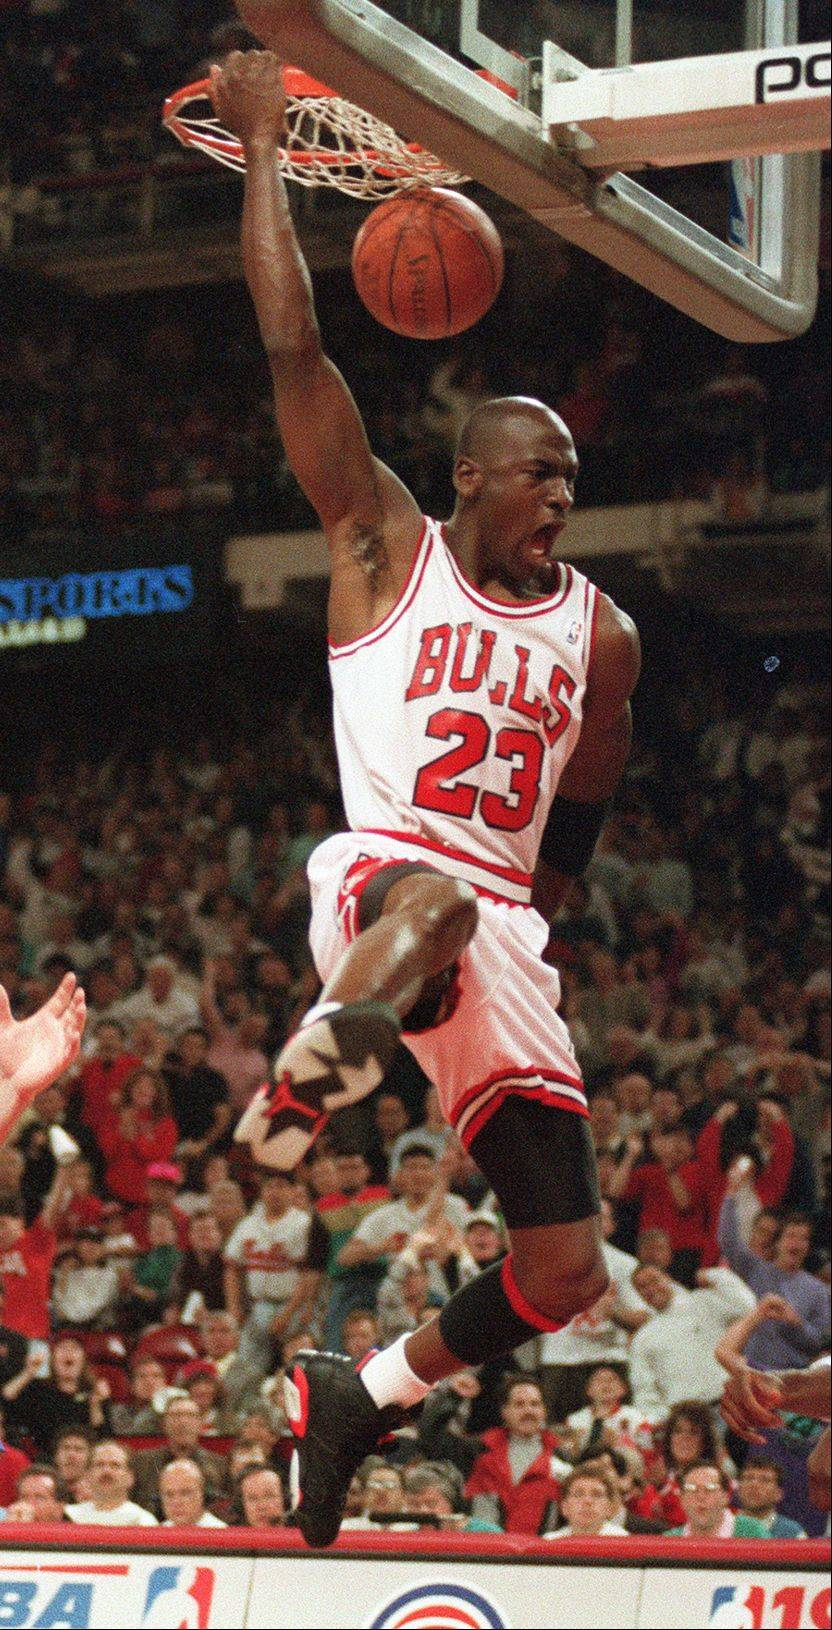 Michael Jordan turns 50: Thanks for the memories